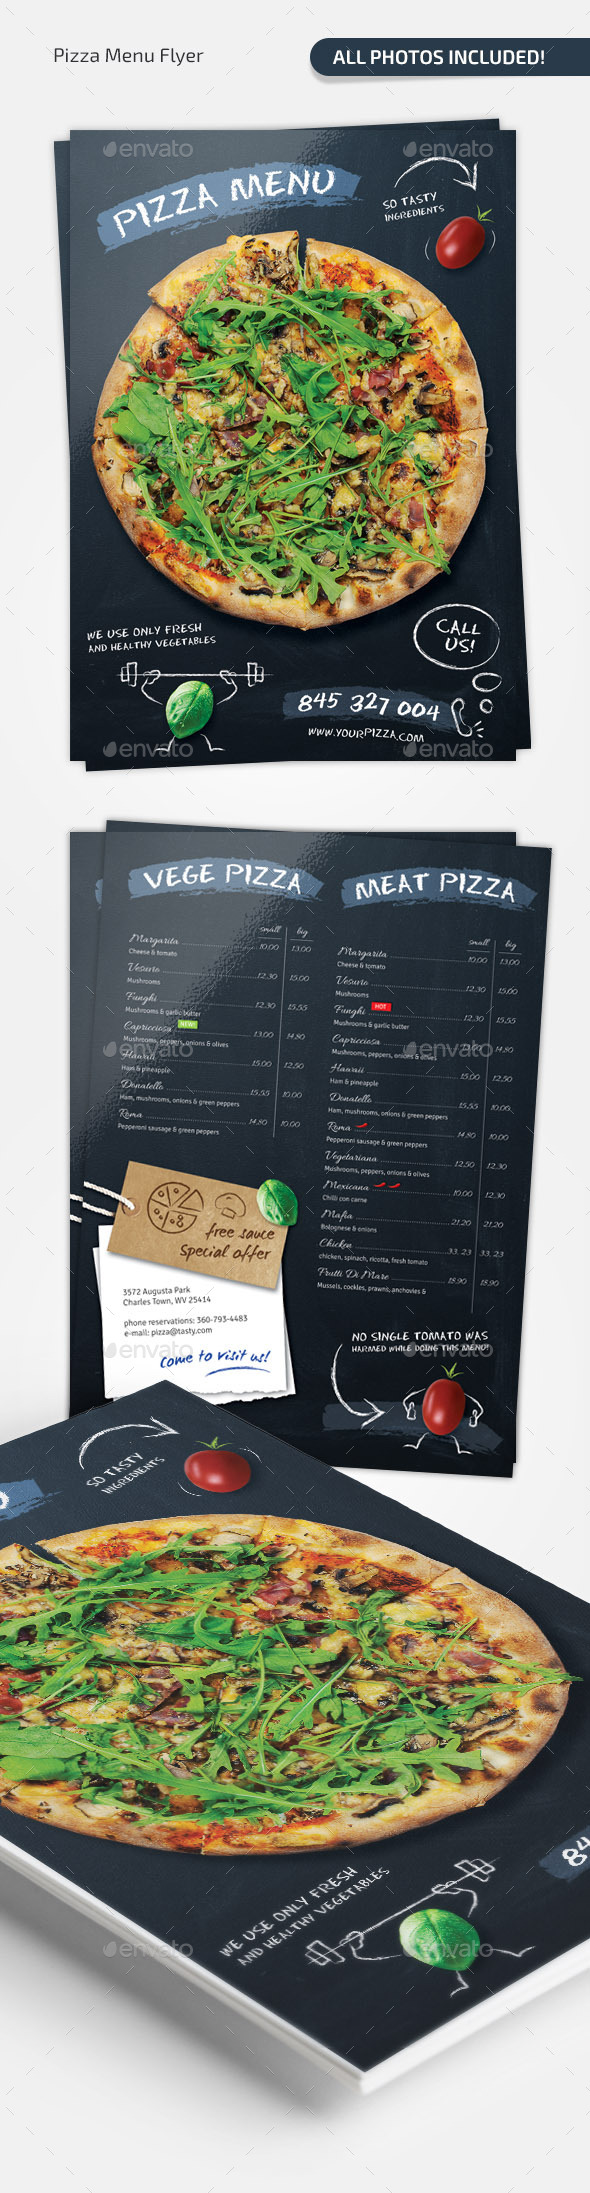 Pizza Chalkboard Menu - Food Menus Print Templates